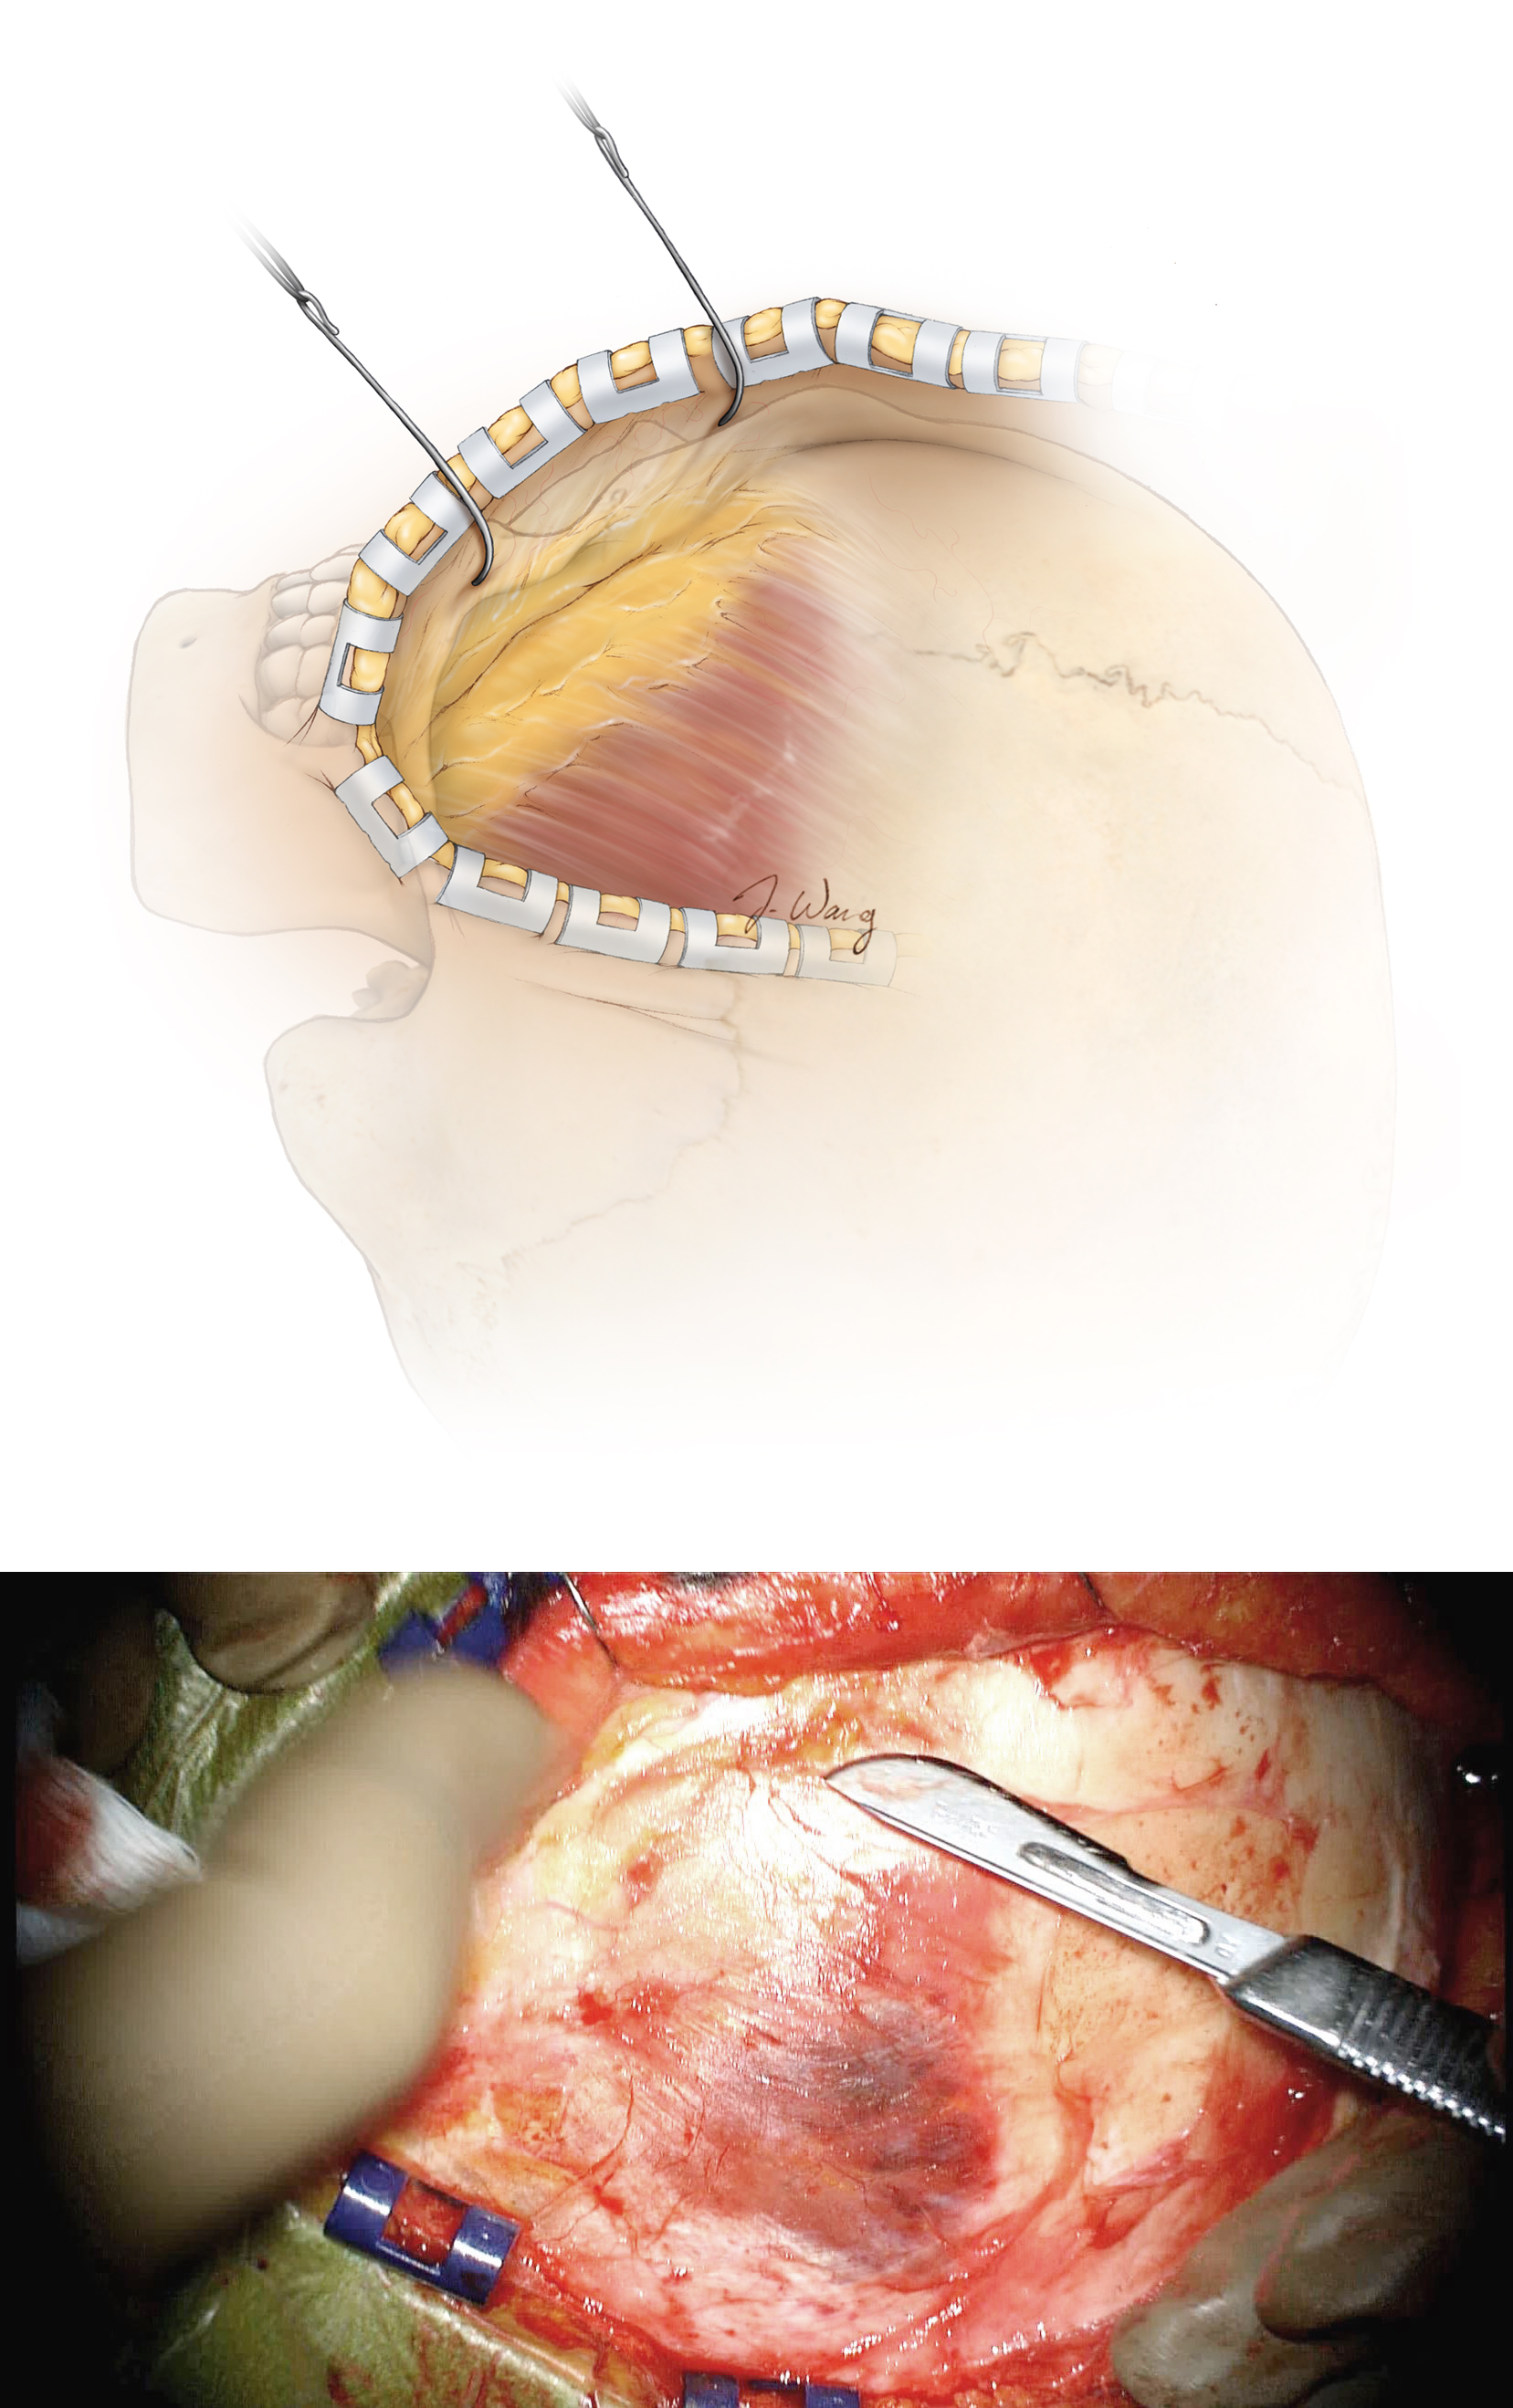 Figure 13: The plane between the galea and the pericranium is developed in case a vascularized pericranial flap is needed at the time of closure. The scalp flap is reflected anteriorly and is separated from the temporalis fascia. The belly of the #10 scalpel blade may be used to separate the pericranium from the galea. The fat pad is exposed.